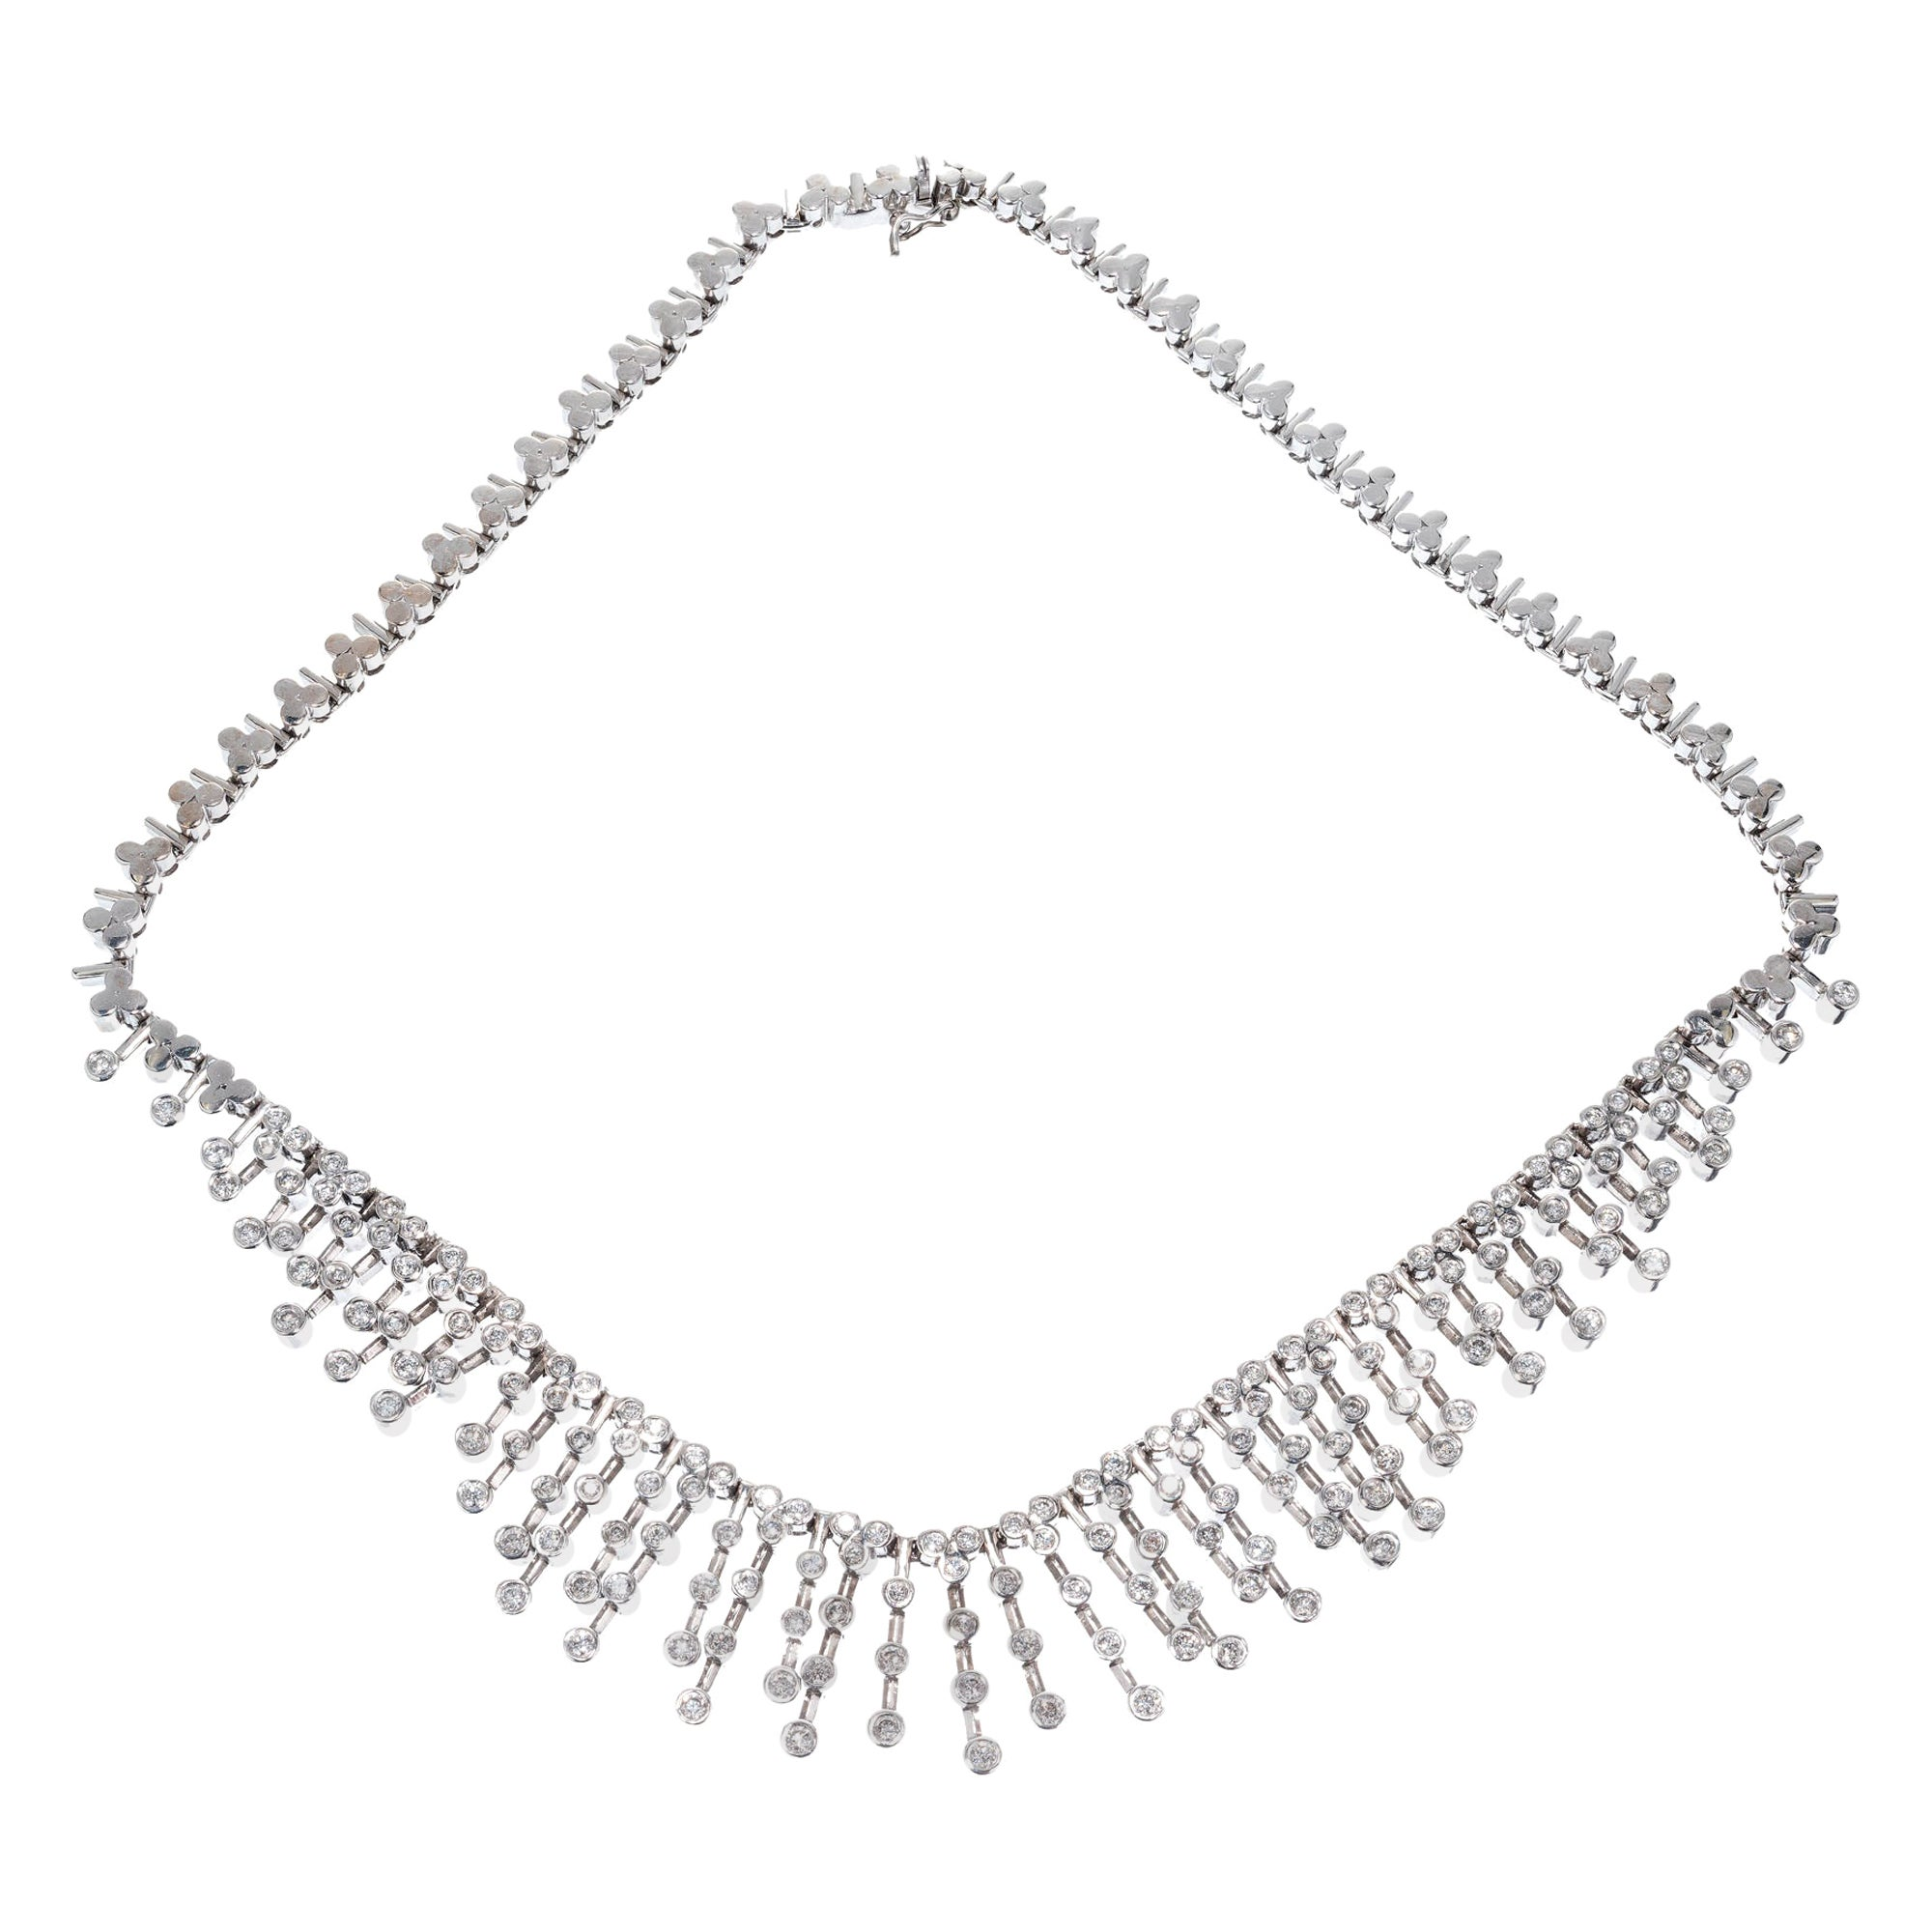 4.00 Carat Diamond White Gold Cleopatra Style Necklace